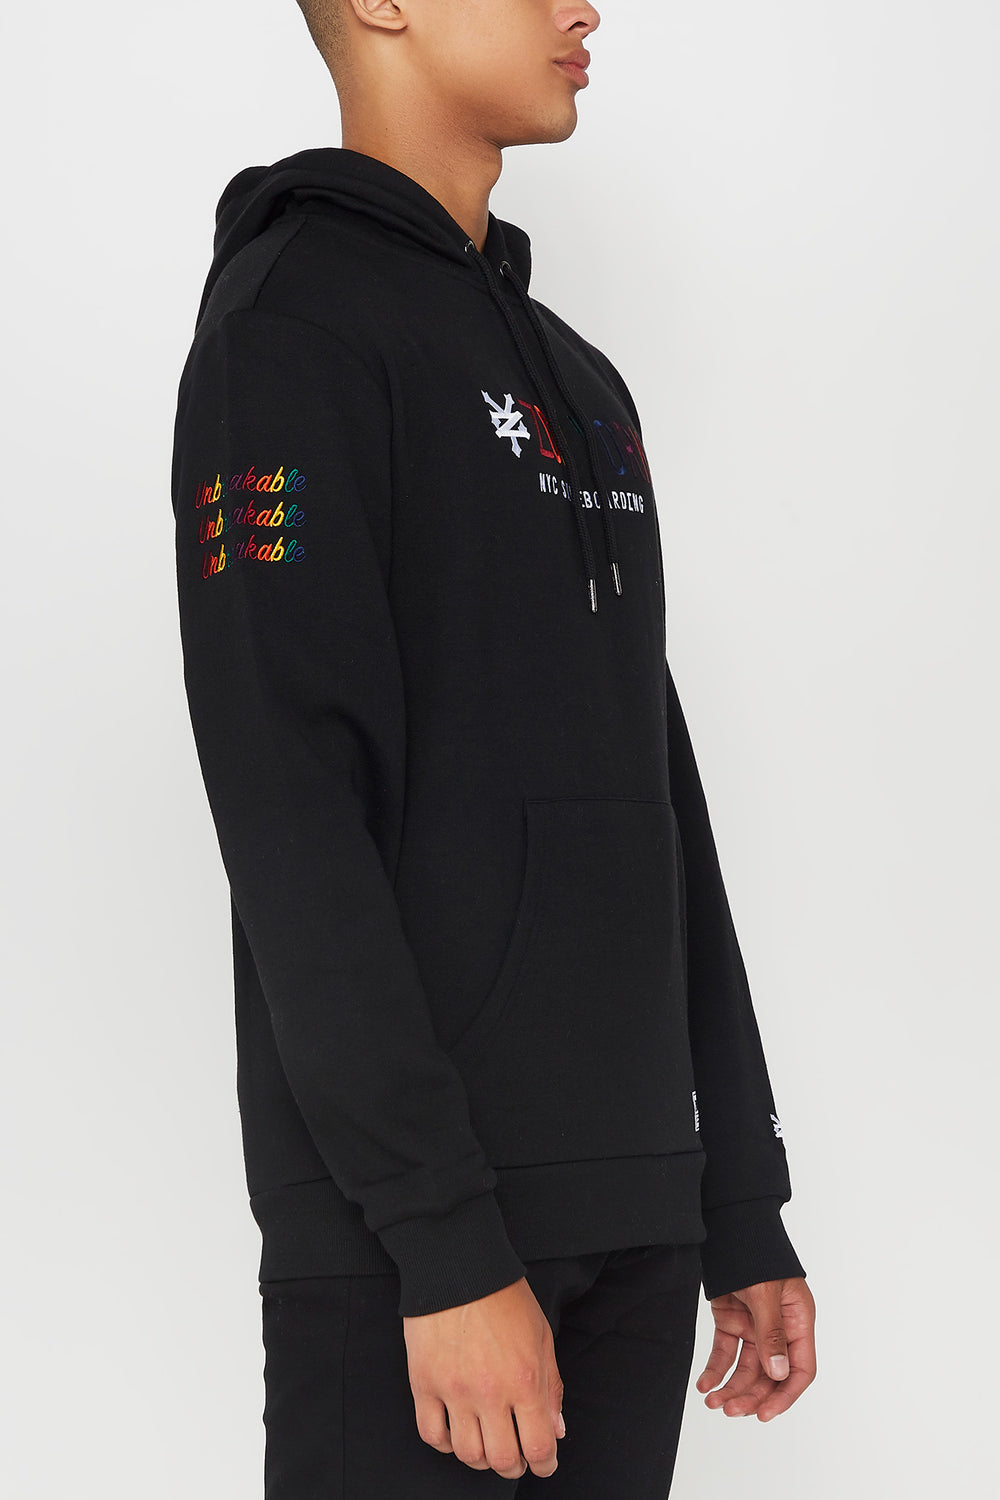 Zoo York Mens Rainbow Embroidery Hoodie Black